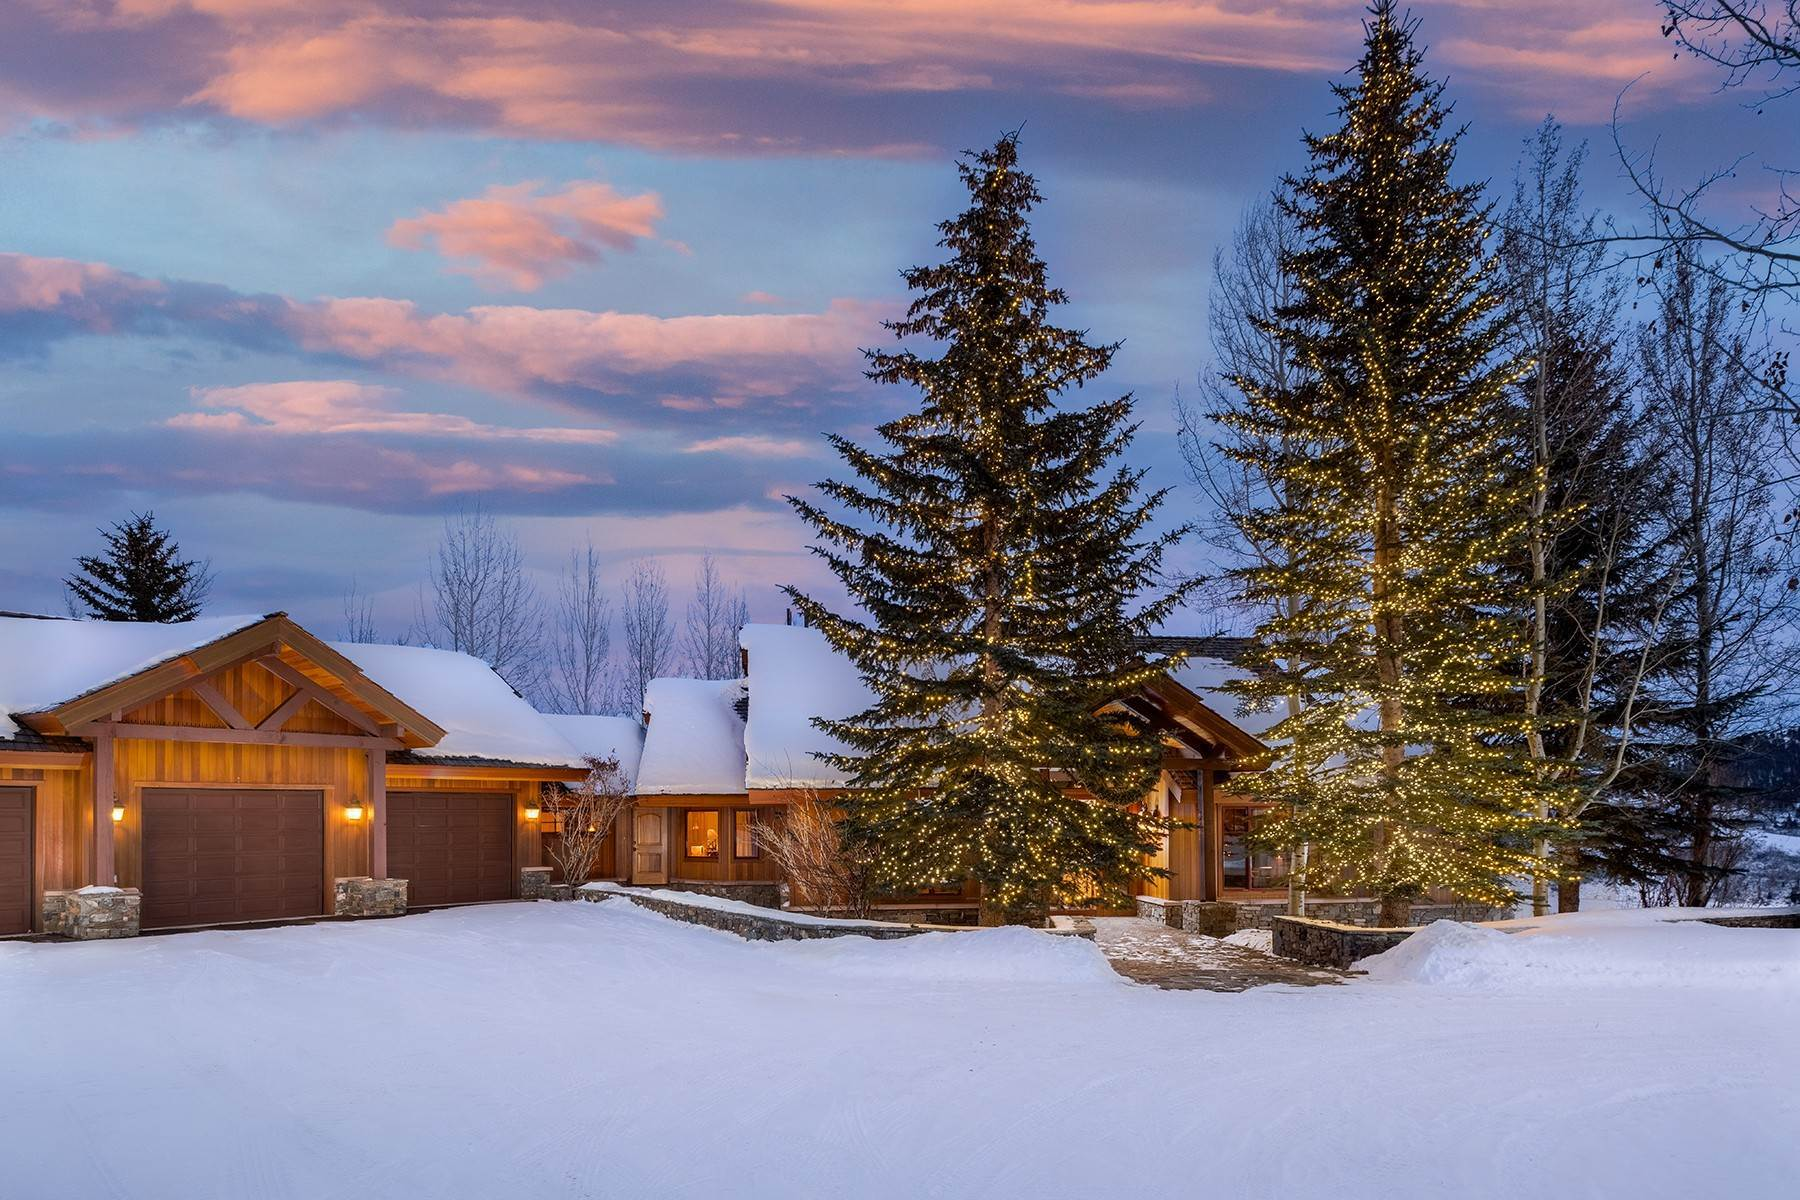 Single Family Homes for Sale at Private Retreat in Gros Ventre North 1750 N Blacktail Road Jackson, Wyoming 83001 United States